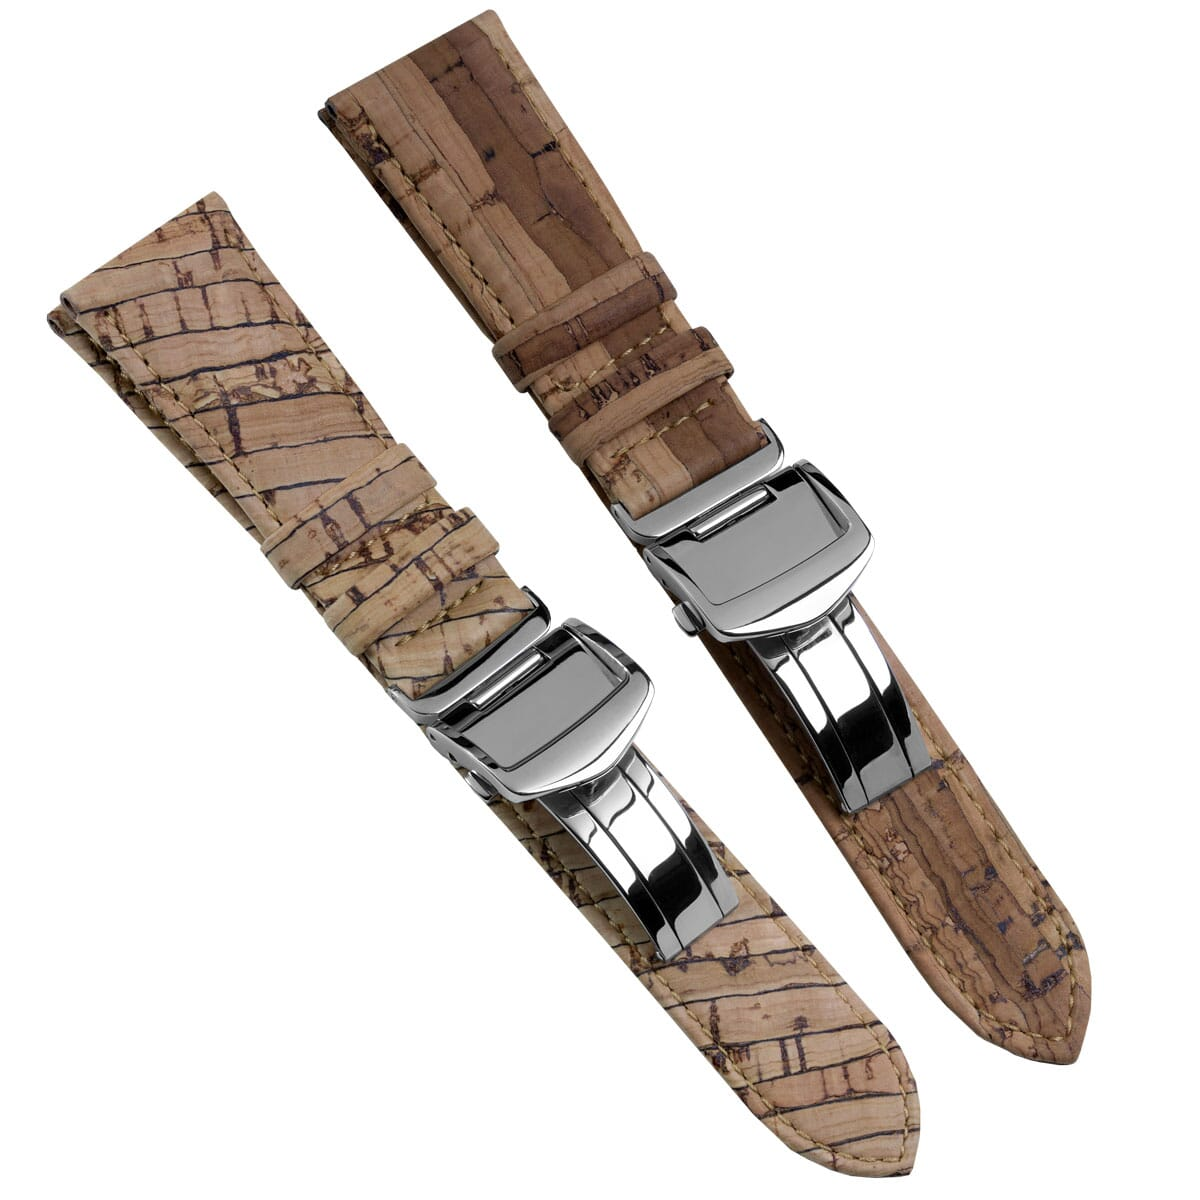 New range of watch straps made from Cork